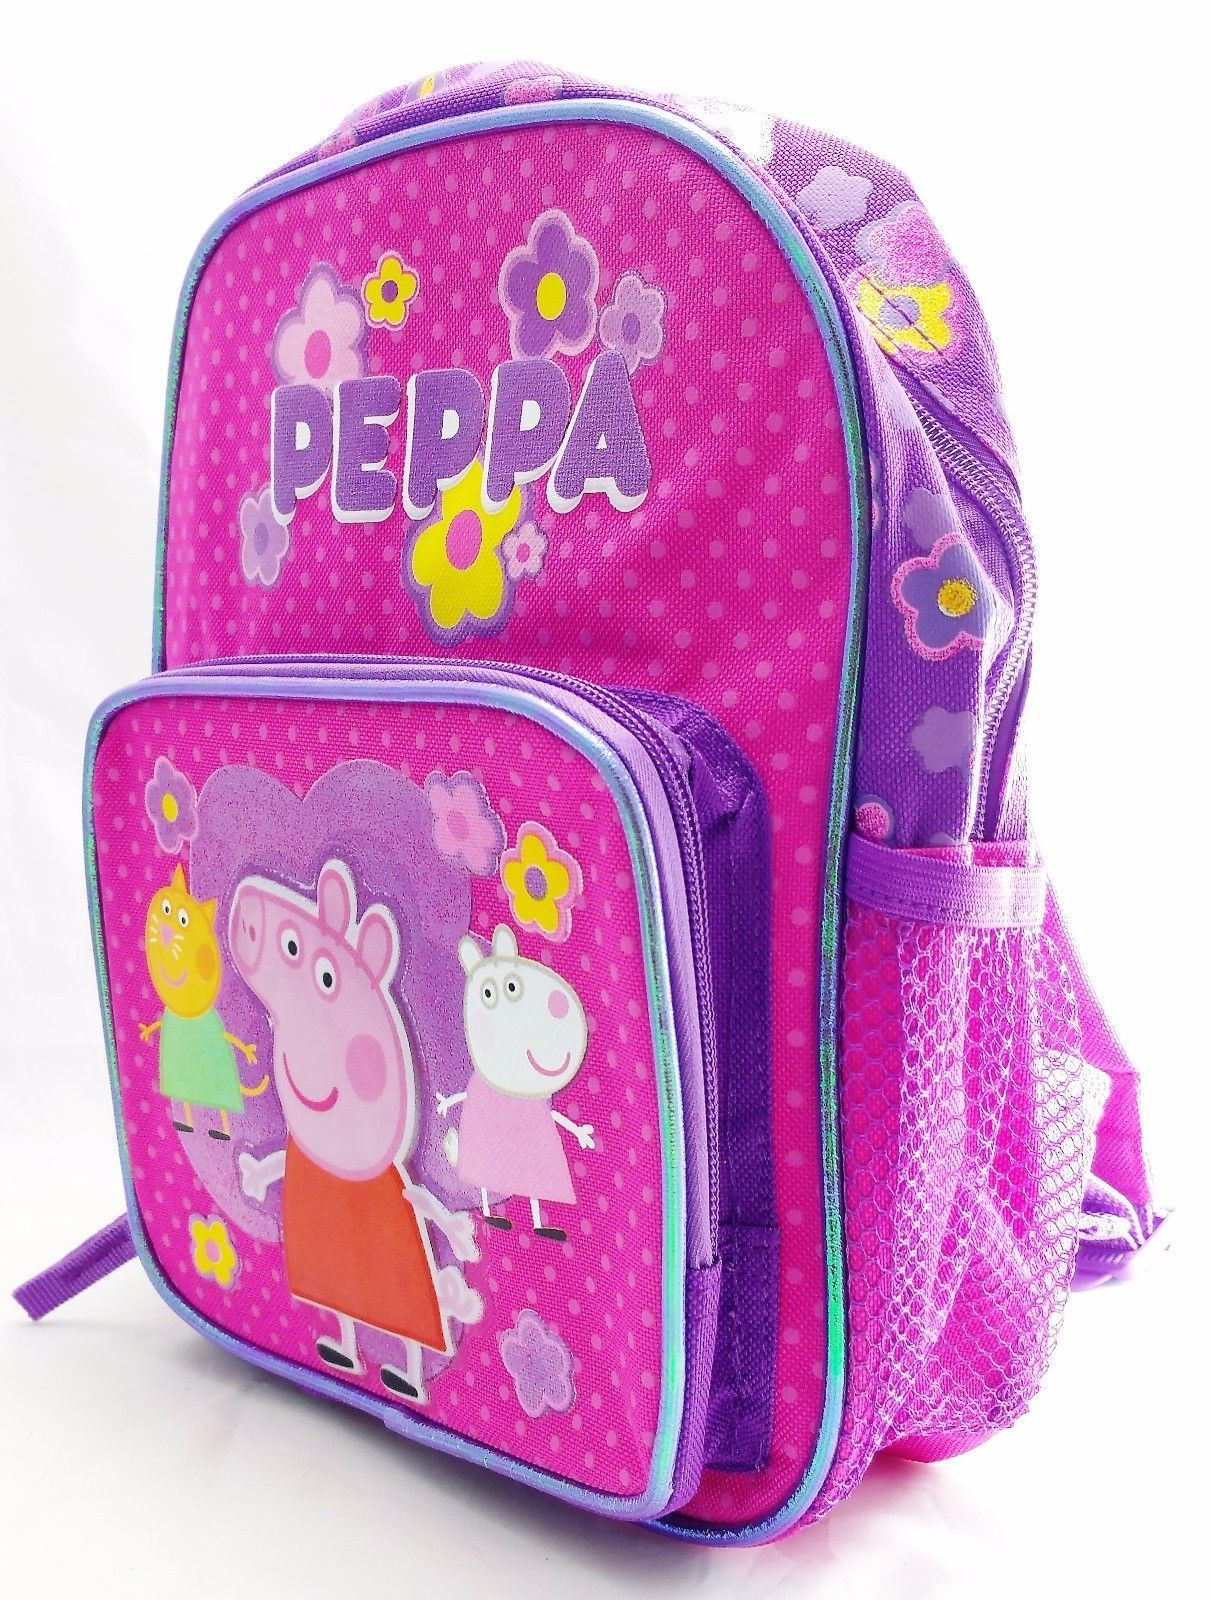 Superb Mini Backpack Peppa Pig Pink W Friends 10 Girls Bag Onthecornerstone Fun Painted Chair Ideas Images Onthecornerstoneorg